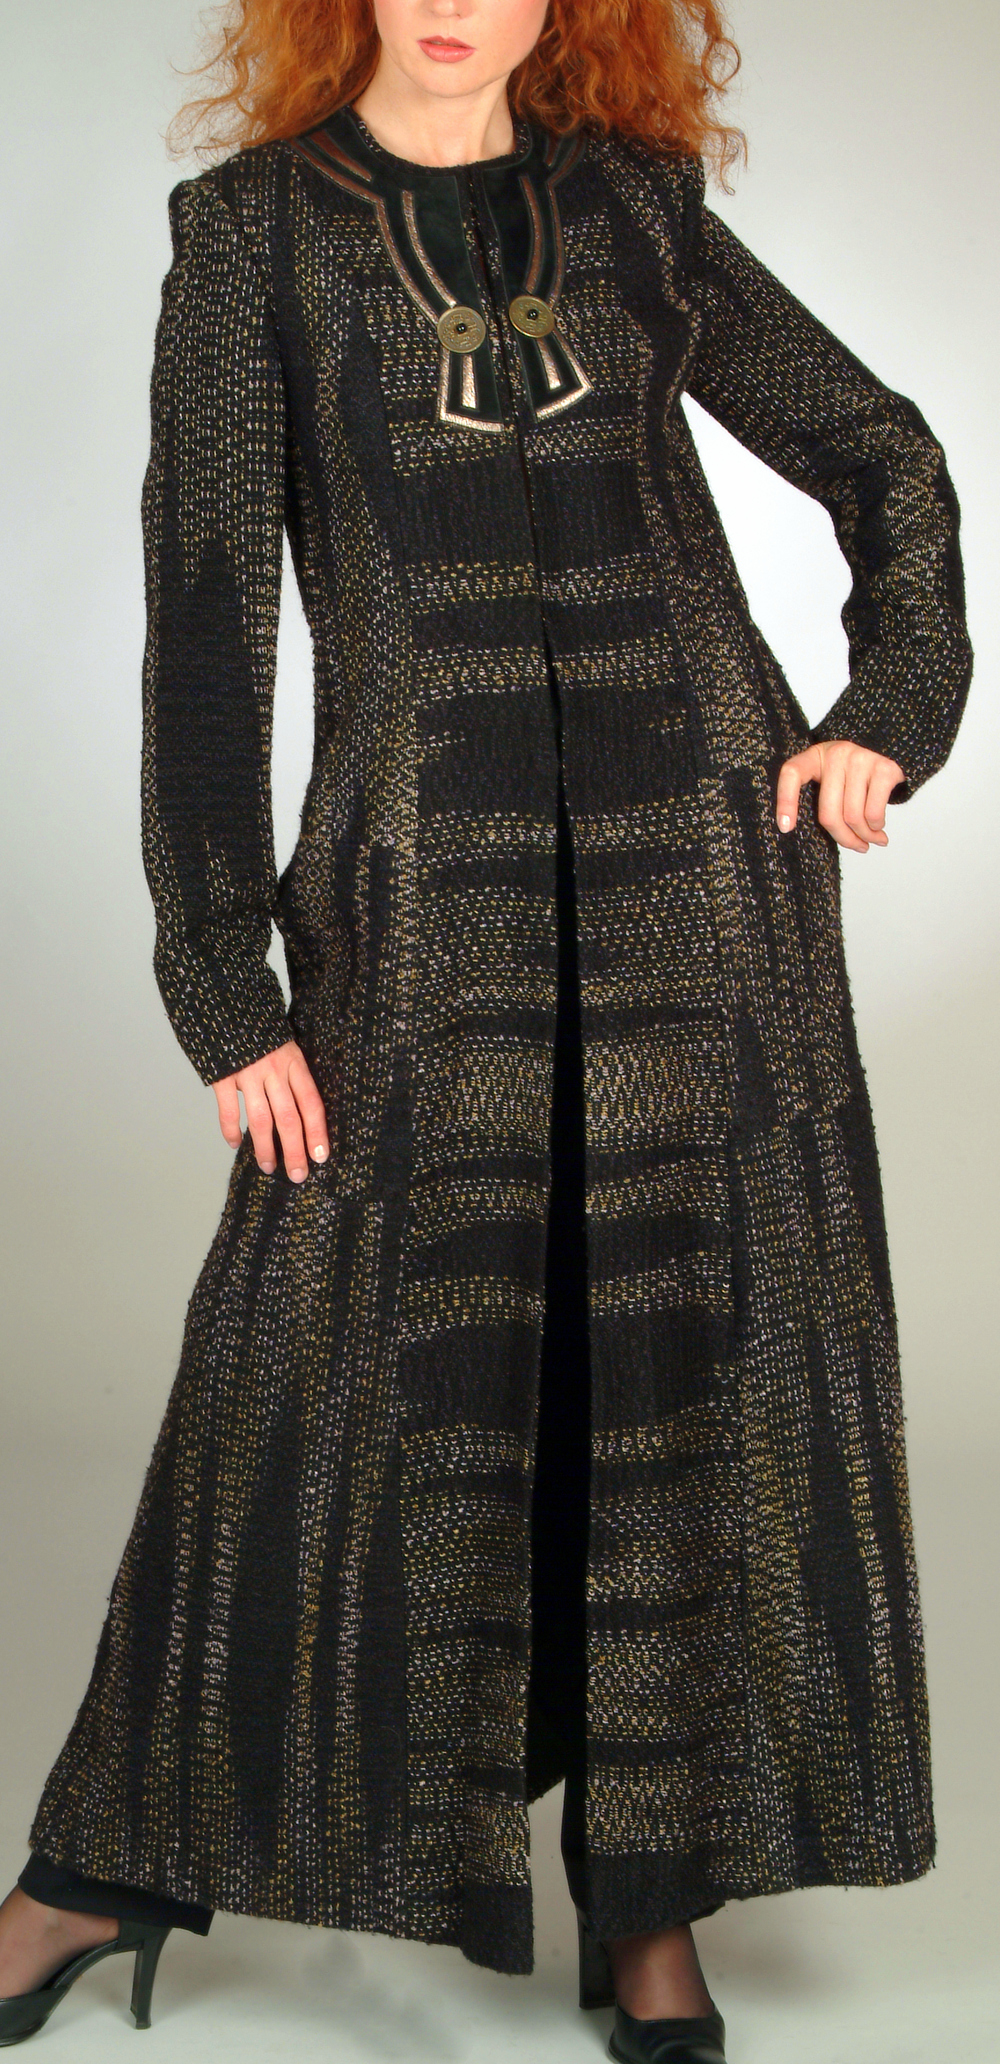 Handwoven Coat, Business Apparel, Kathleen Weir-West 11-001.jpg